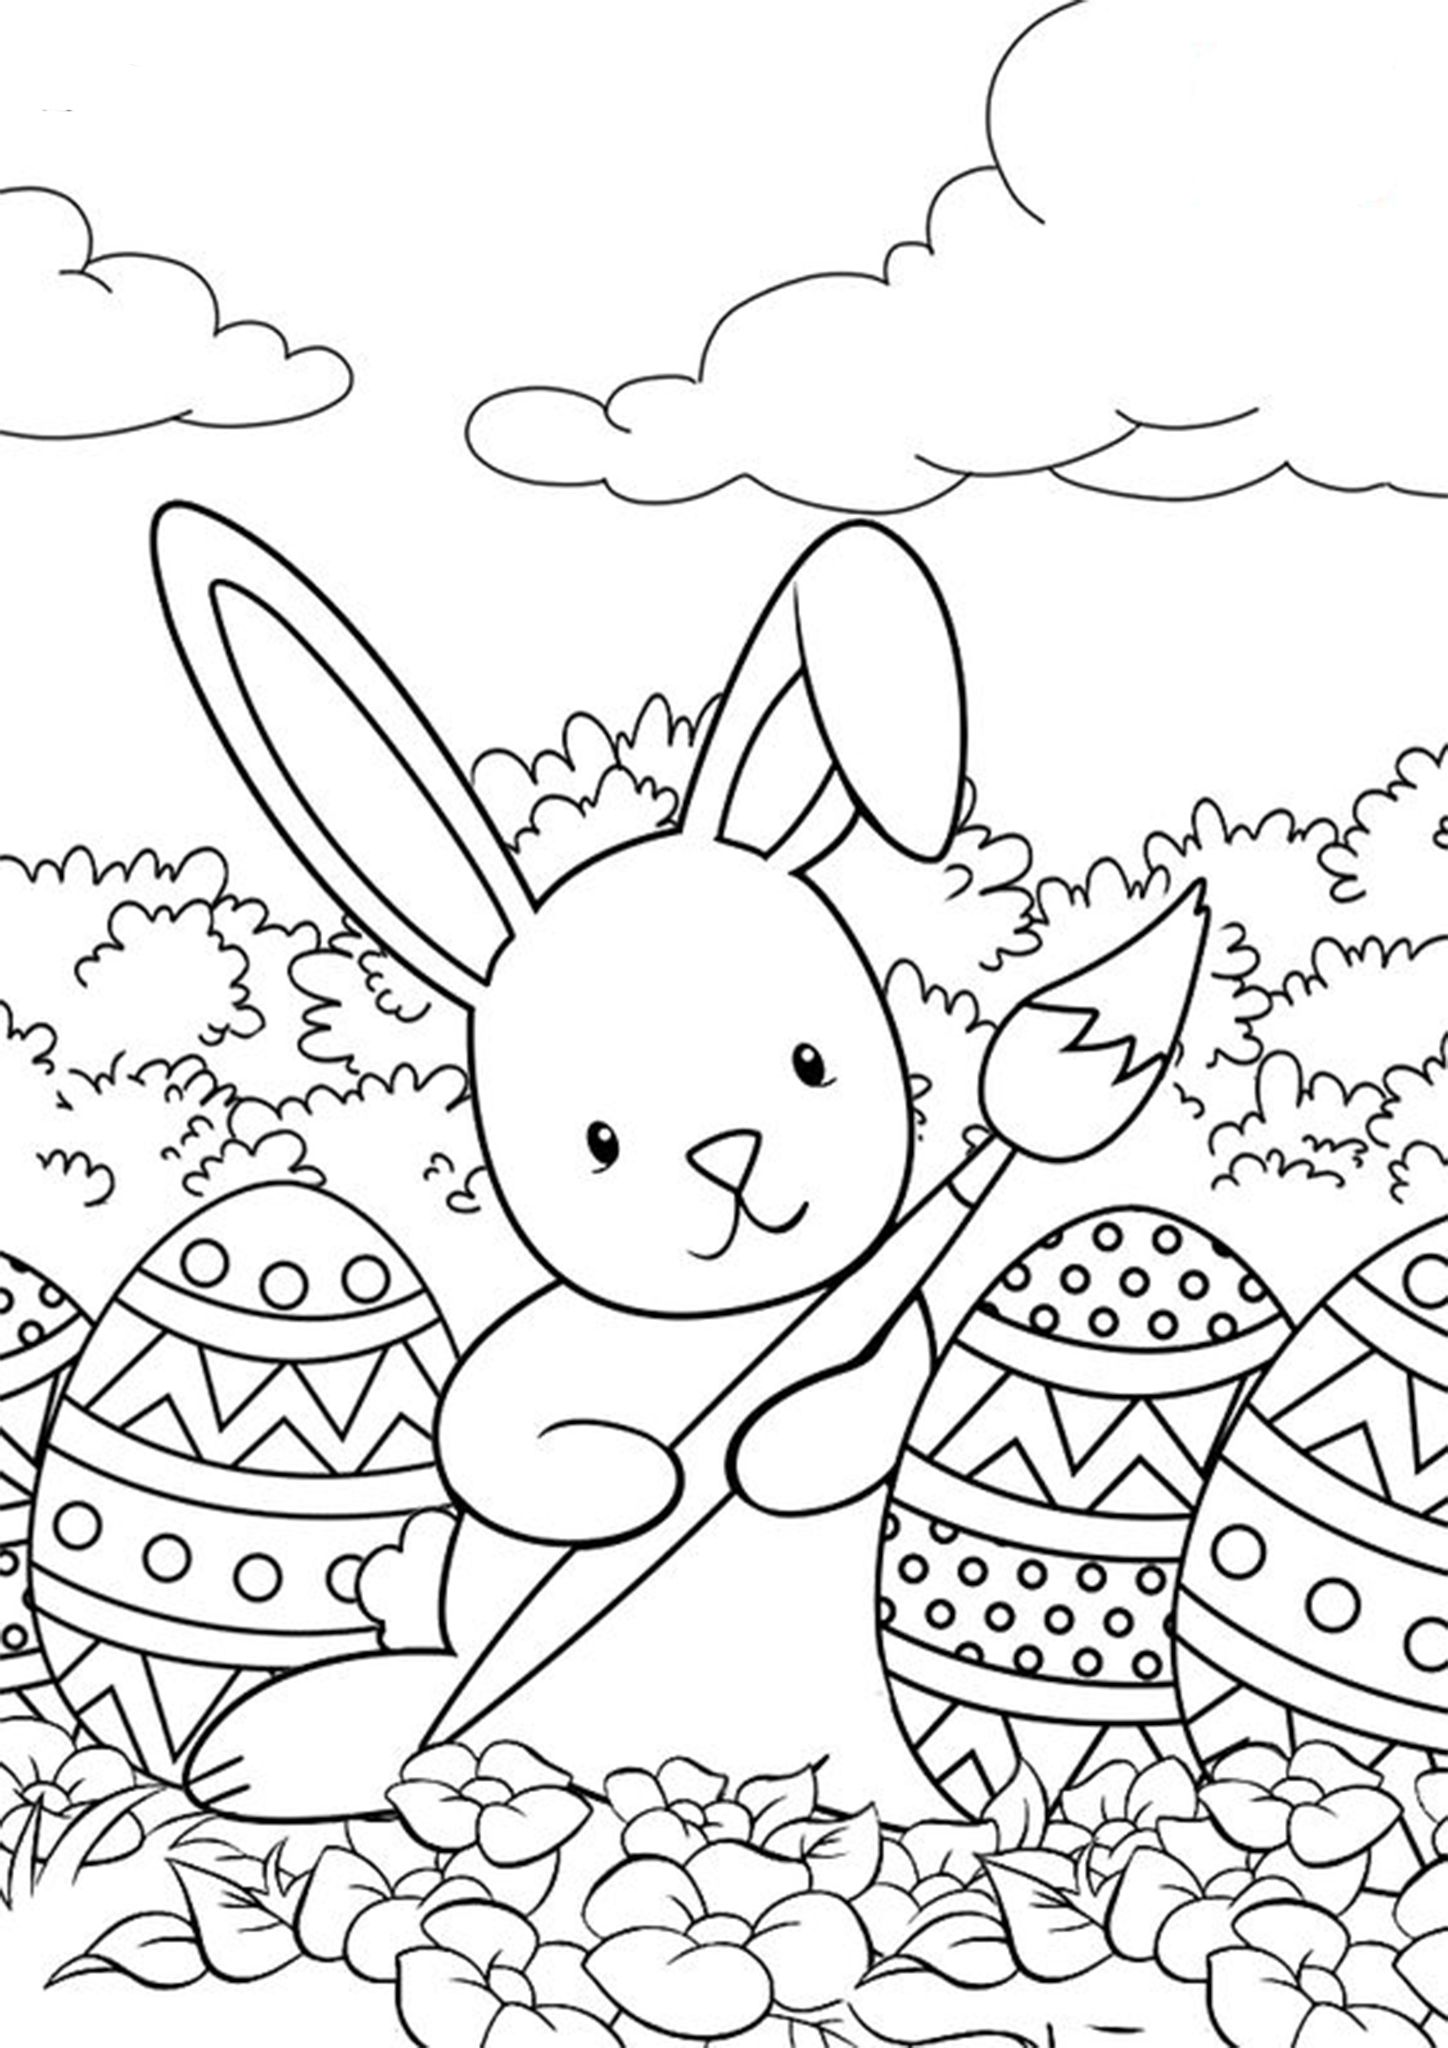 kids easter colouring pages free easy to print bunny coloring pages bunny coloring colouring kids easter pages